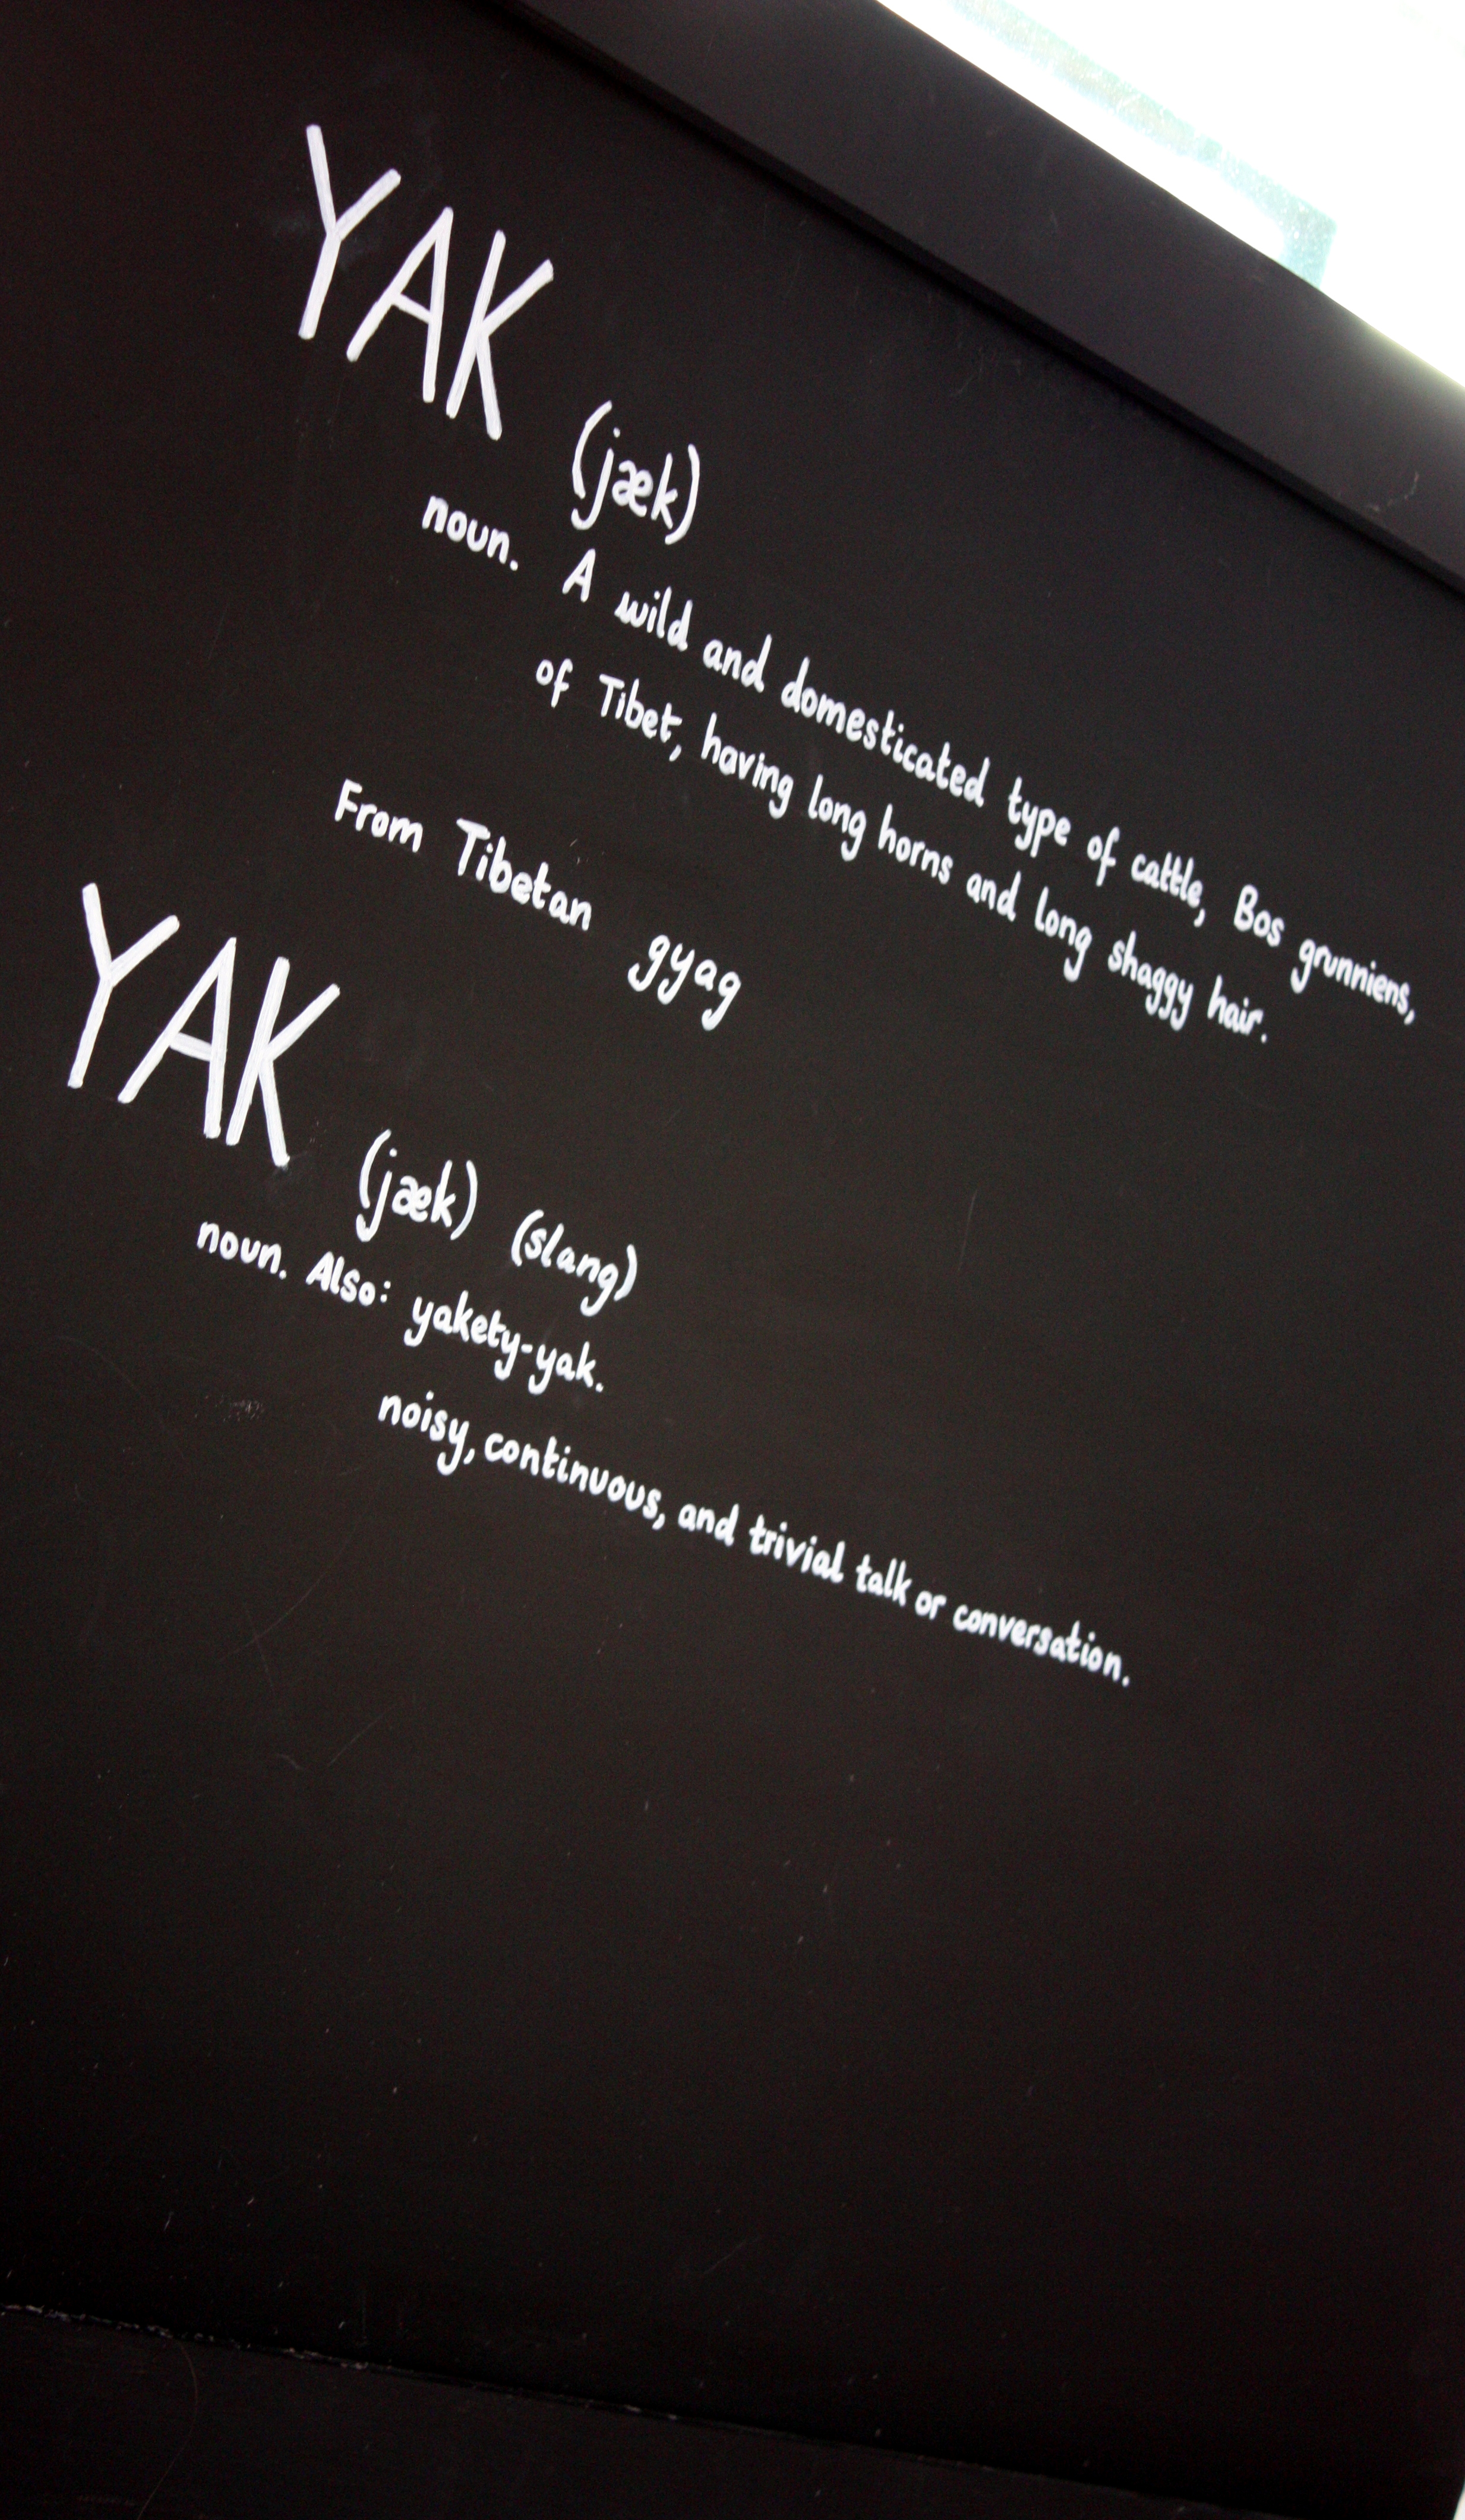 information about YAKs